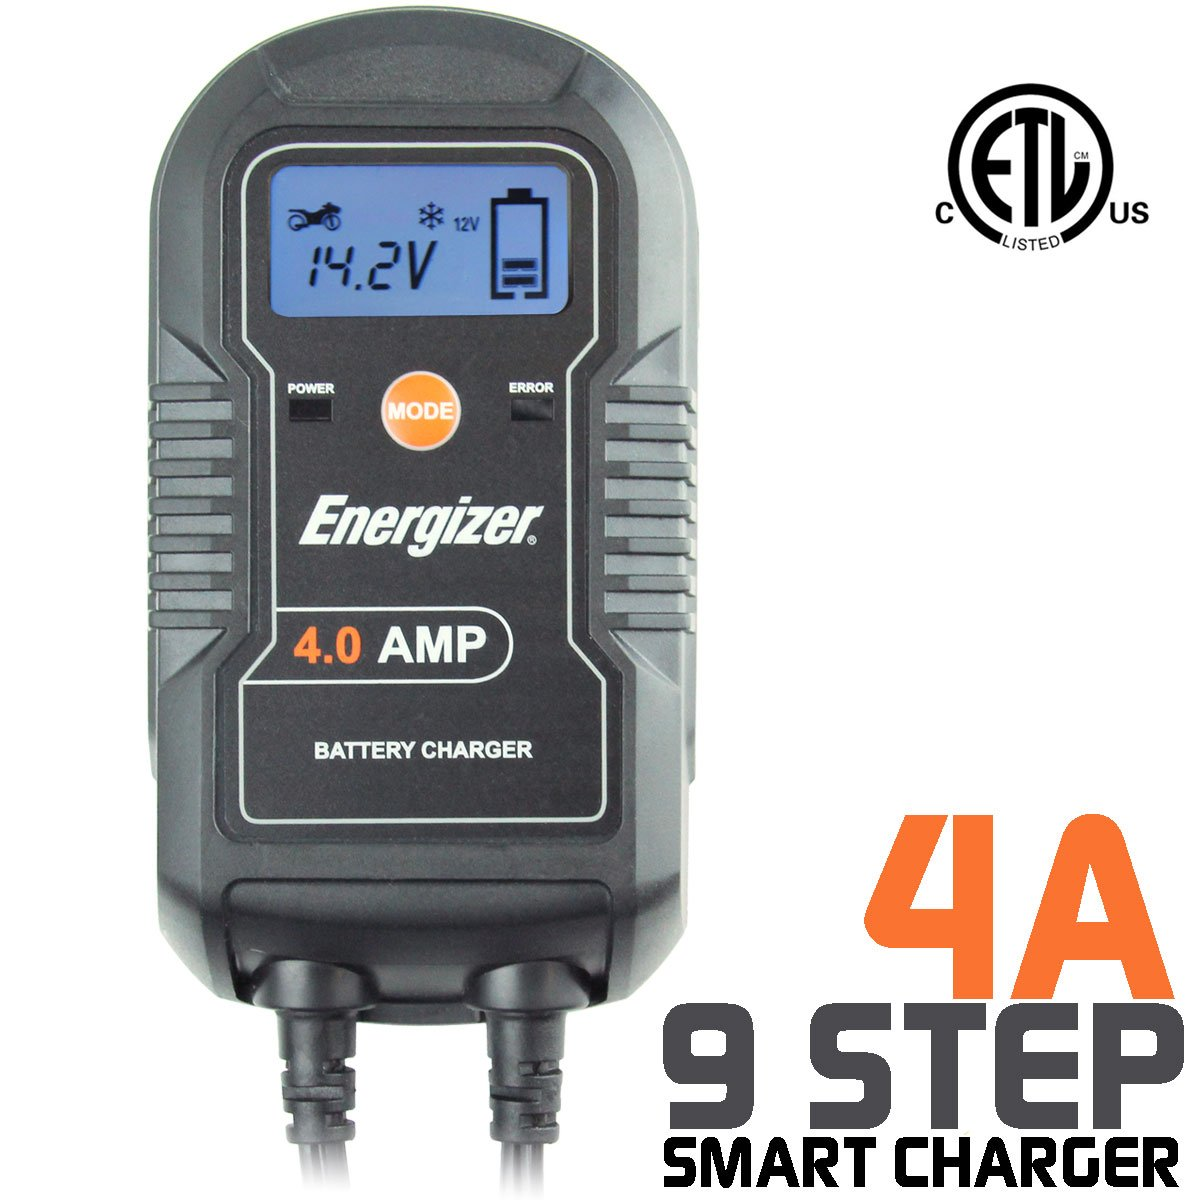 ENC4A Energizer Battery Charger/Maintainer